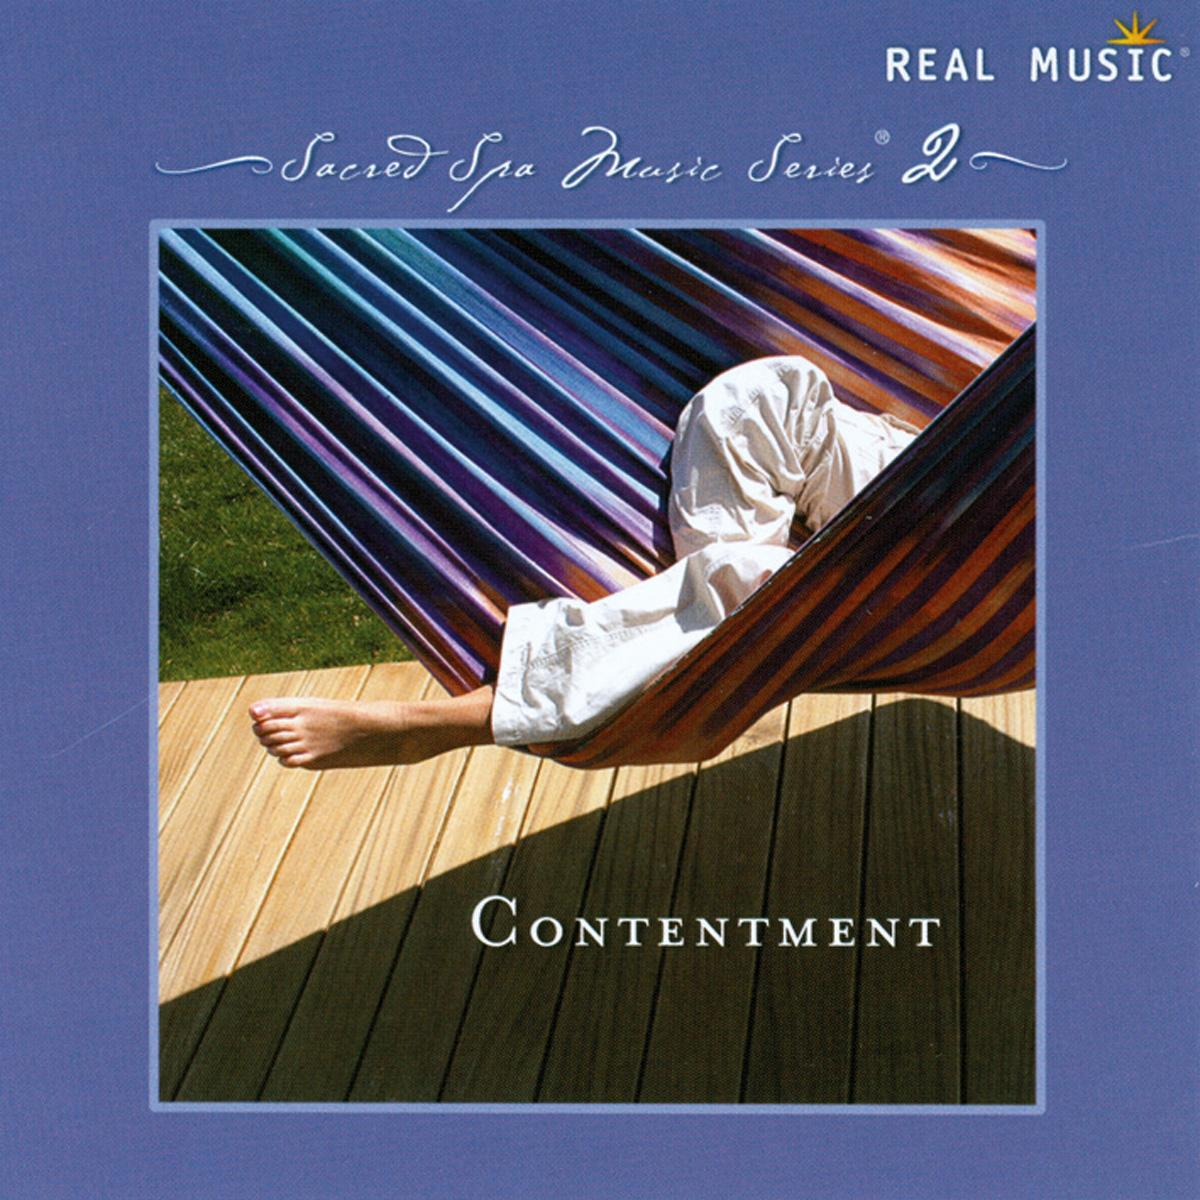 Real Music - Sacred Spa Music Series 2: Contentment